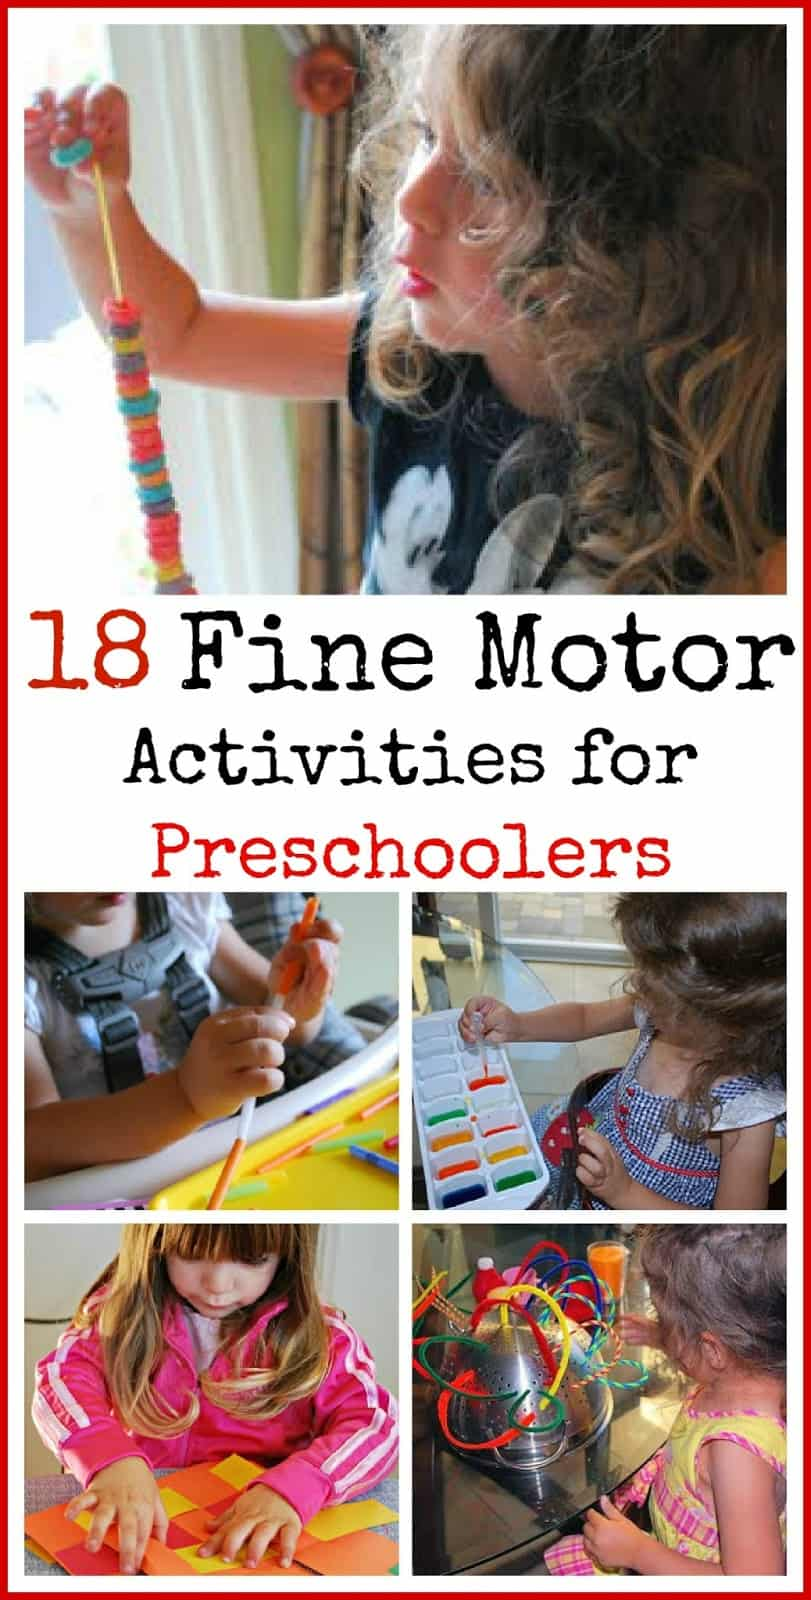 18 Fine Motor Activities for Preschoolers. Love how lots of these ideas use stuff you